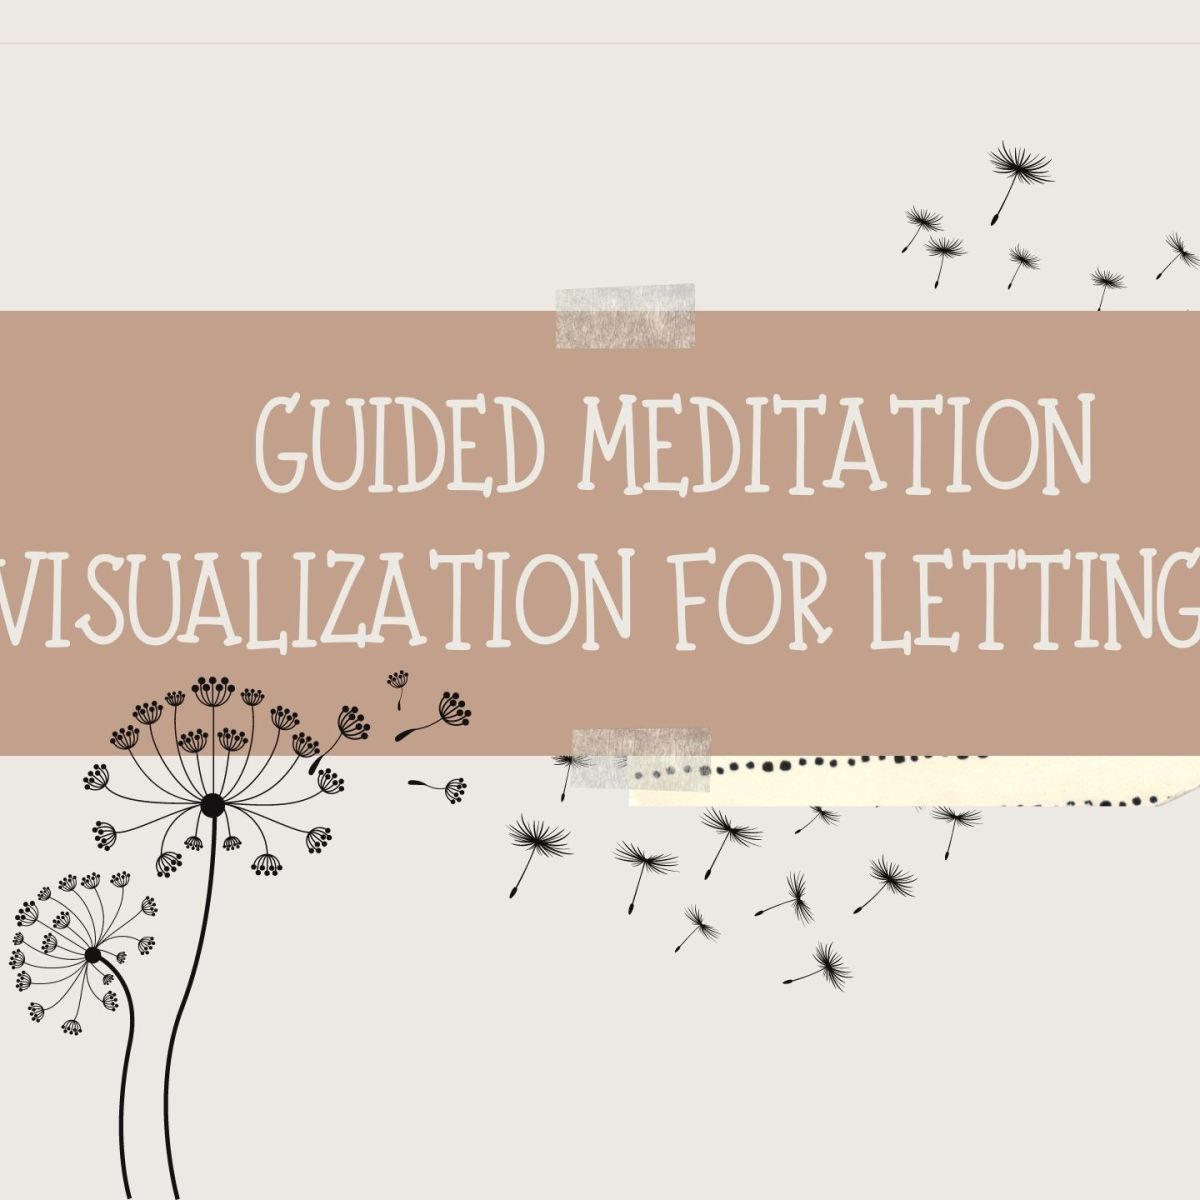 Five Minute guided visualization to help you to let go